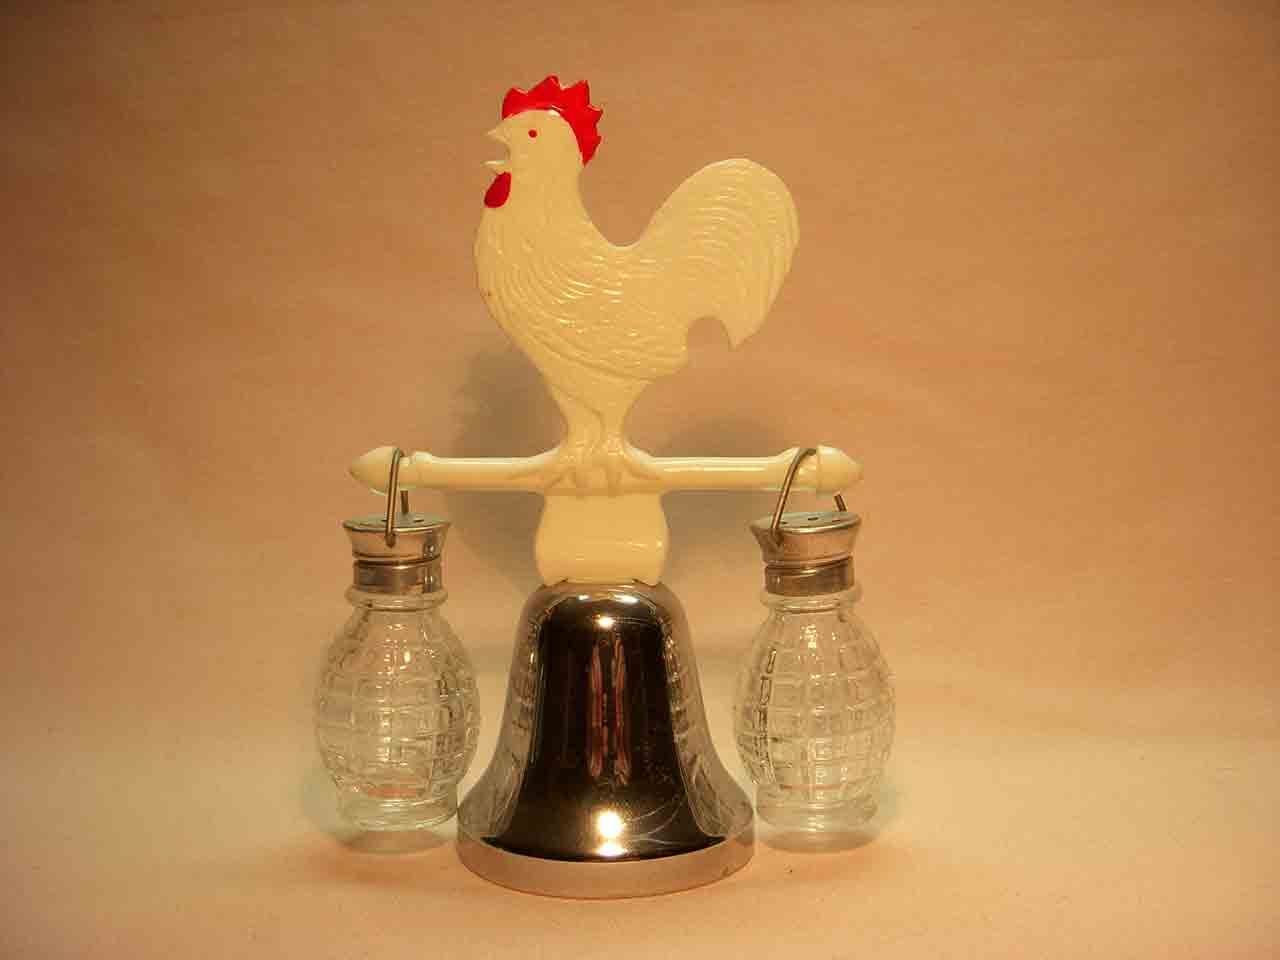 Plastic rooster on dinner bell with hanging salt and pepper shaker